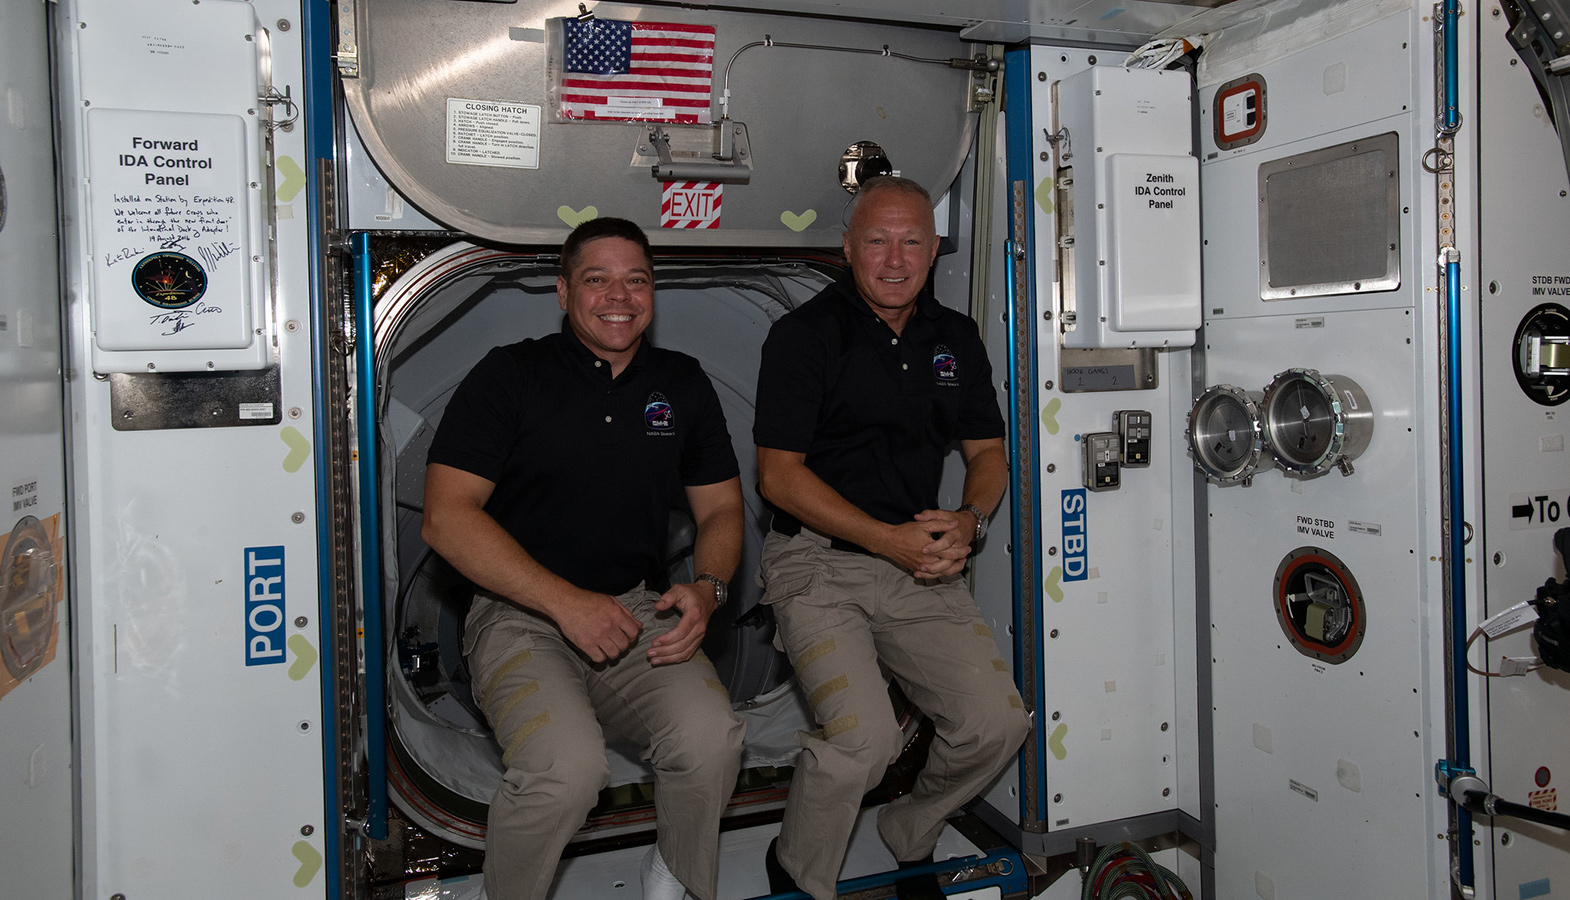 Undocking Of The Crew Dragon Ship With The Crew From The ISS Is Slated For August 1